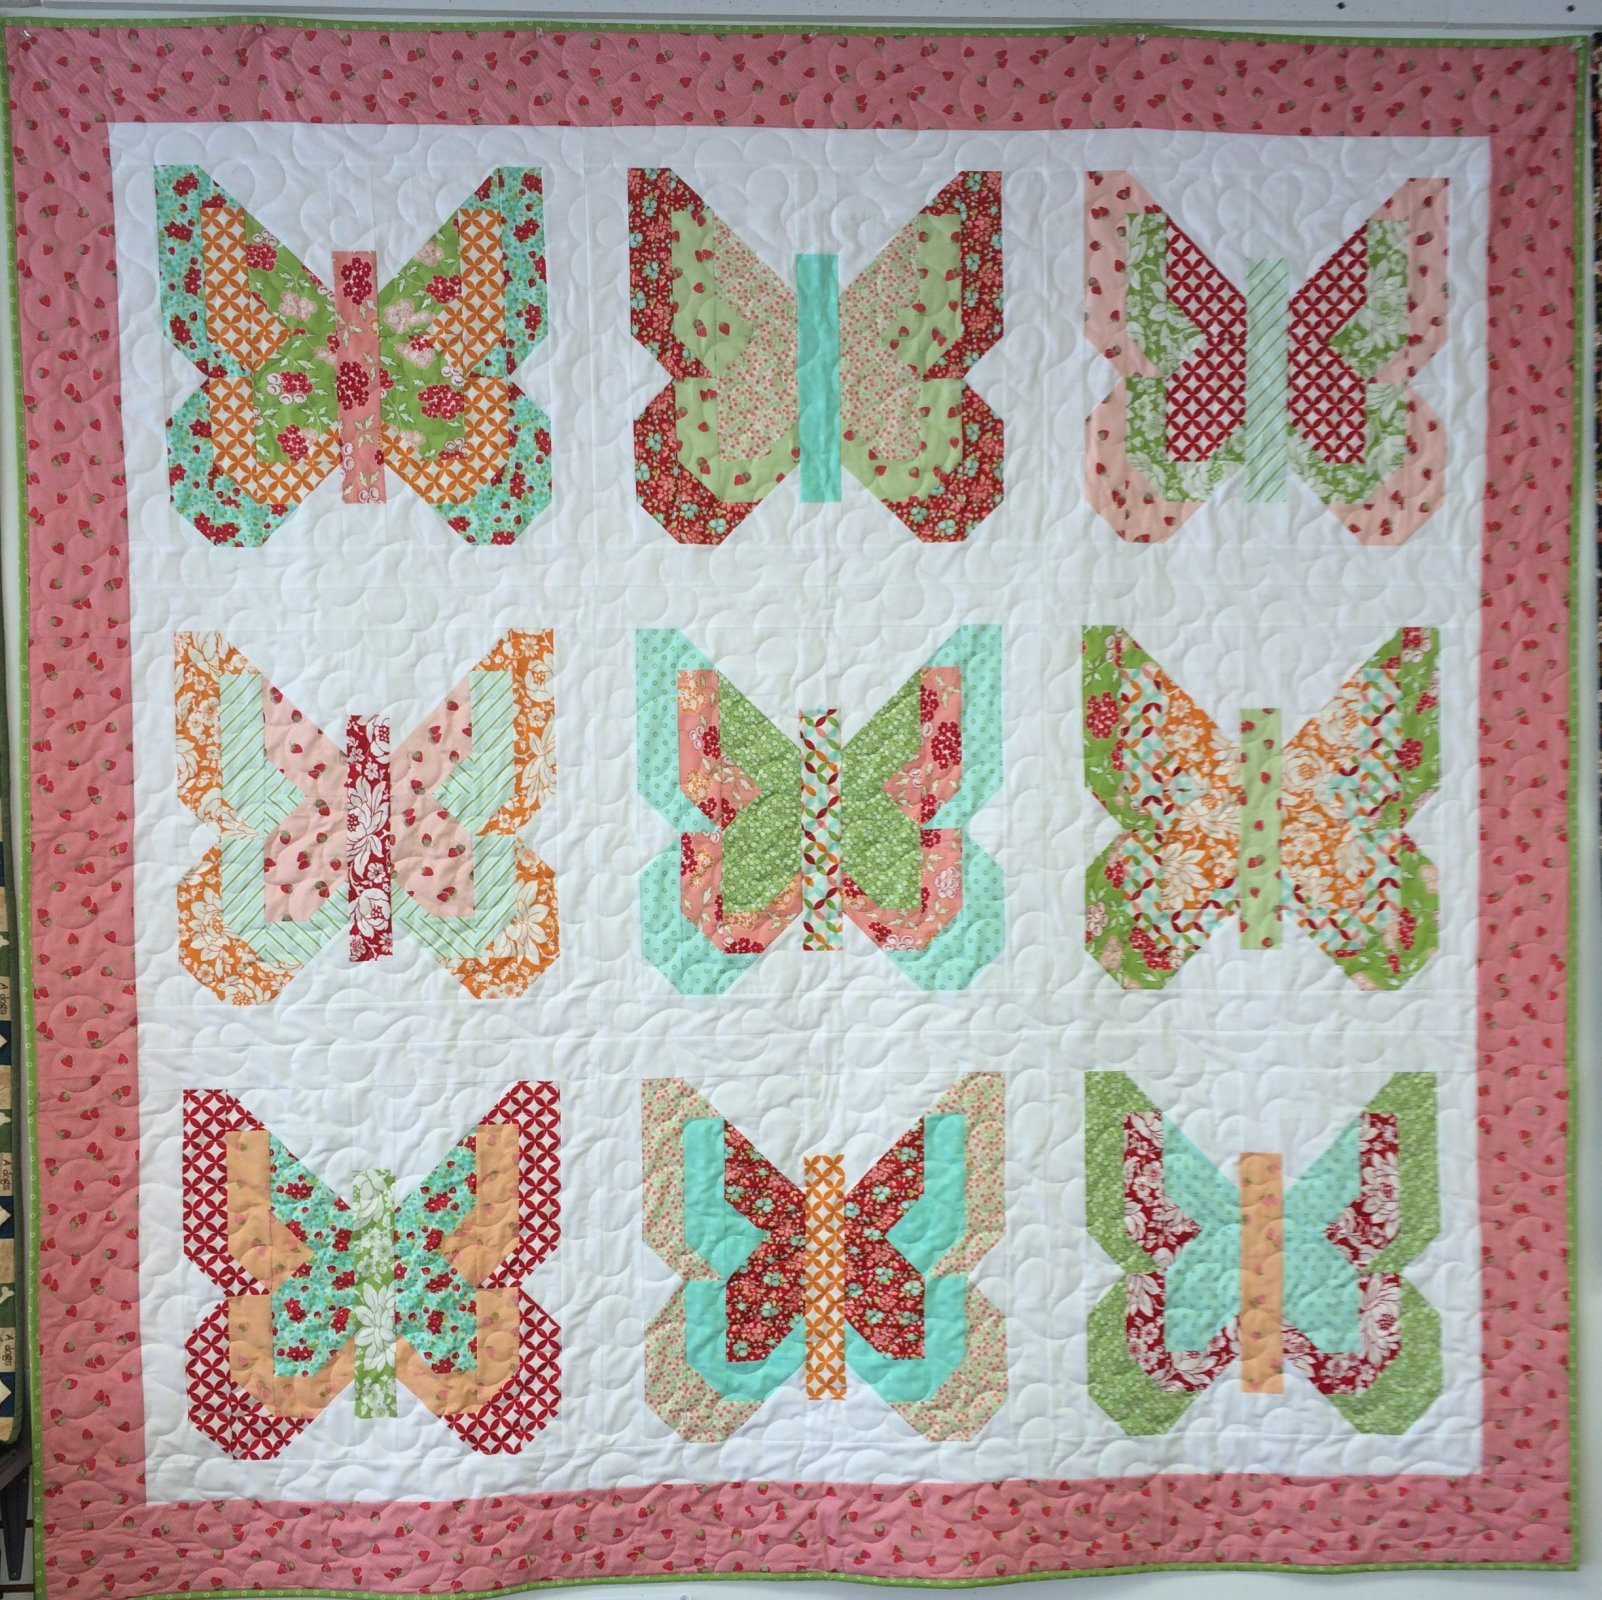 Social butterfly quilt kit - Quilt rits ...